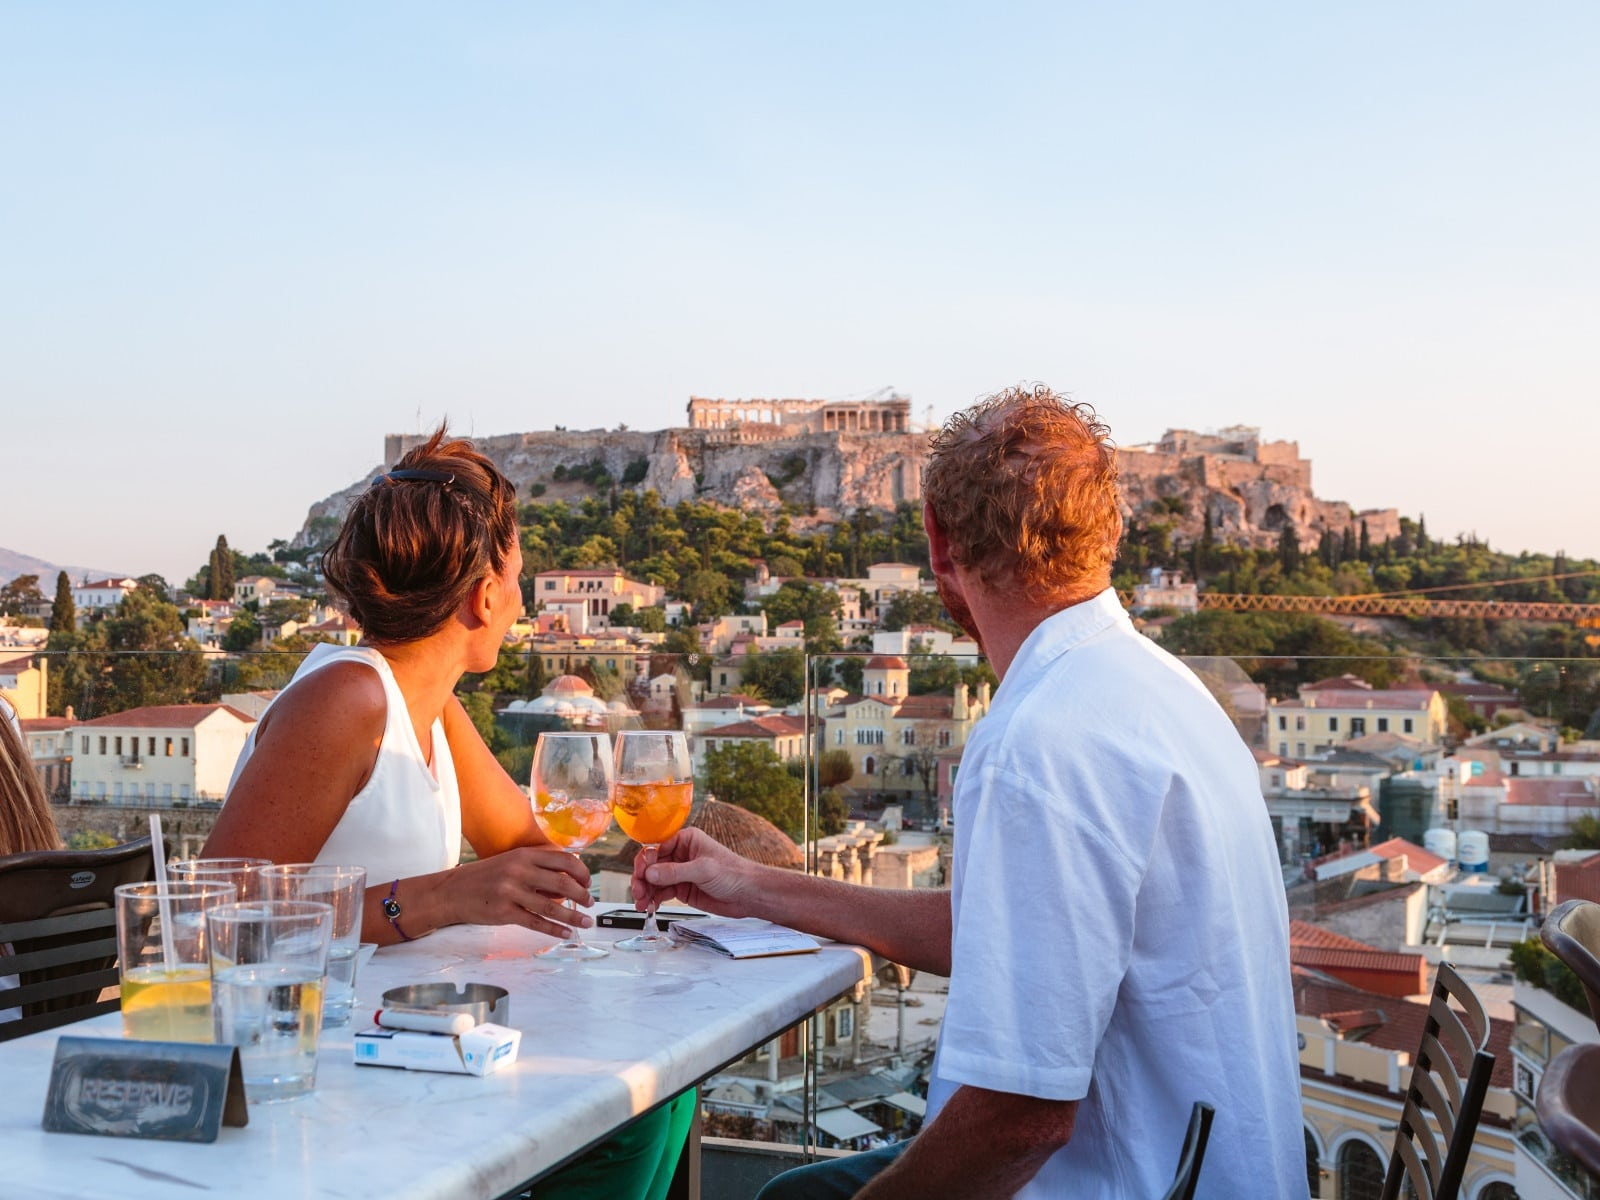 Couple Drinking And Enjoying The View Of The Acropolis At Sunset. Athens, Greece